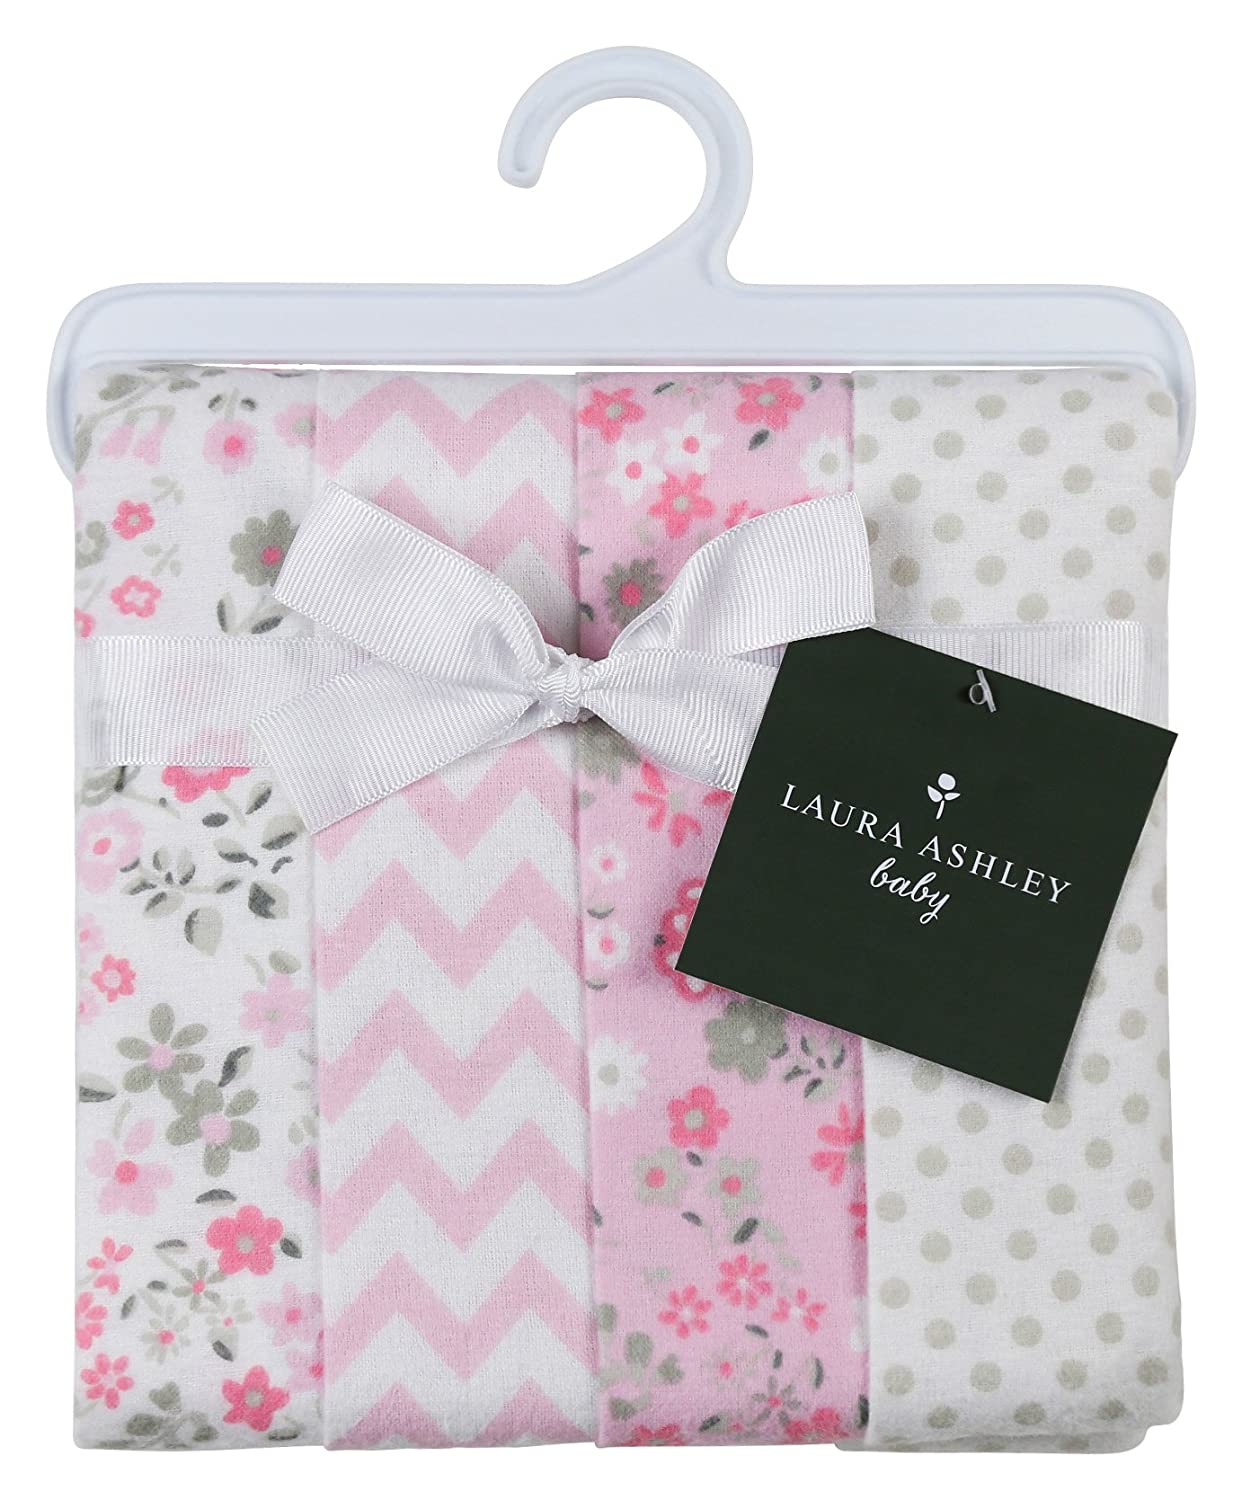 Amazon.com: Laura Ashley 4 Piece Ladder Receiving Blanket, Annabel ...